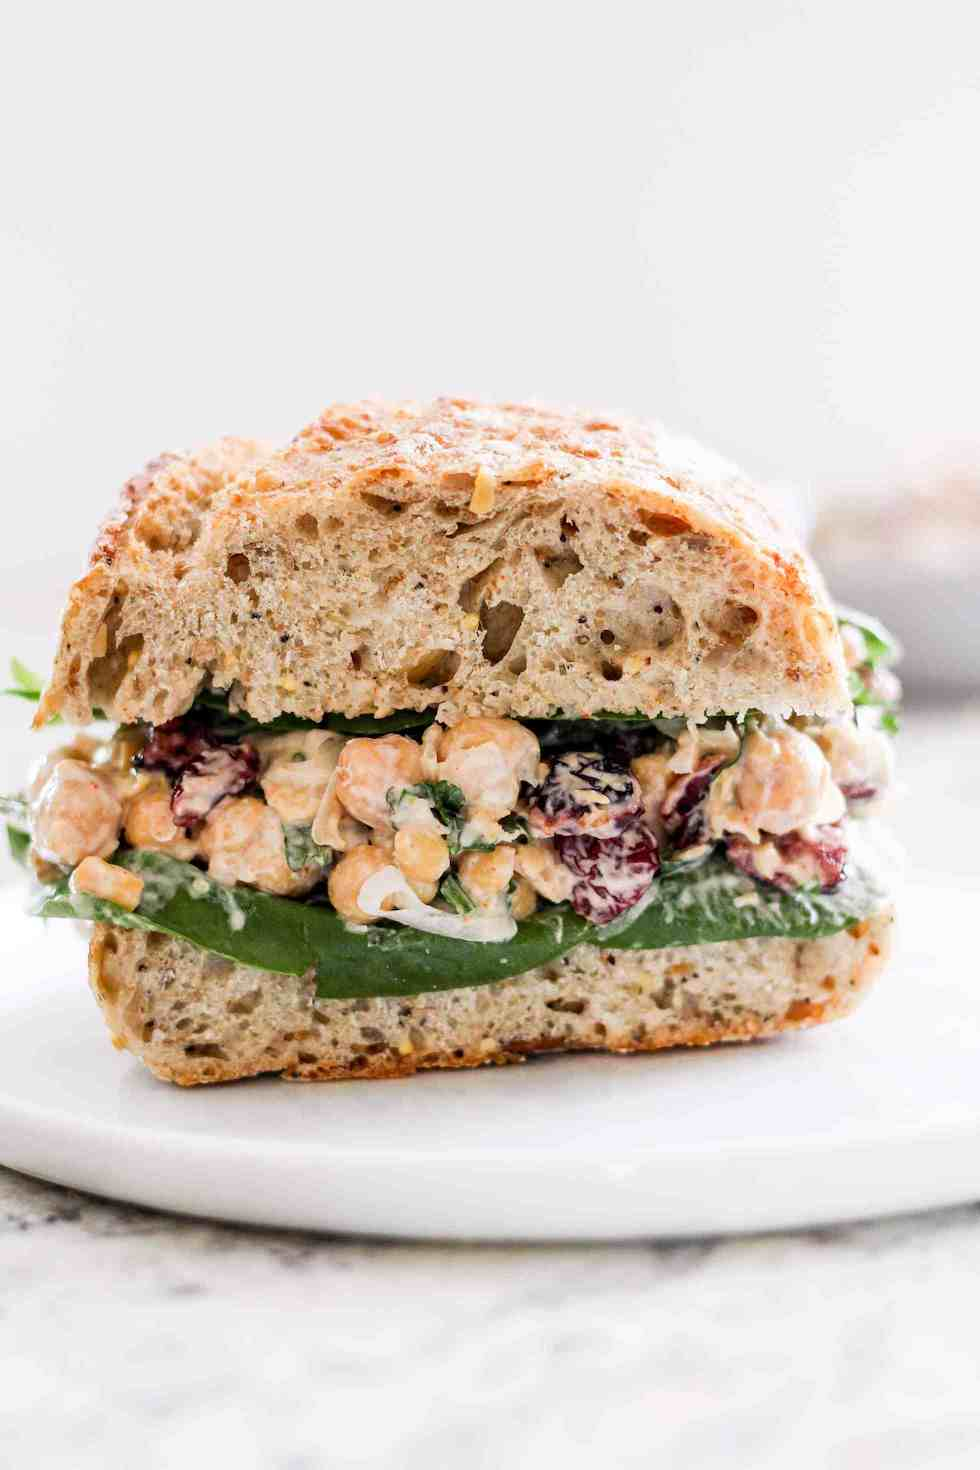 Cranberry Chickpea Salad on a sandwich on a white plate as an example of vegetarian lunches to pack for work or school.